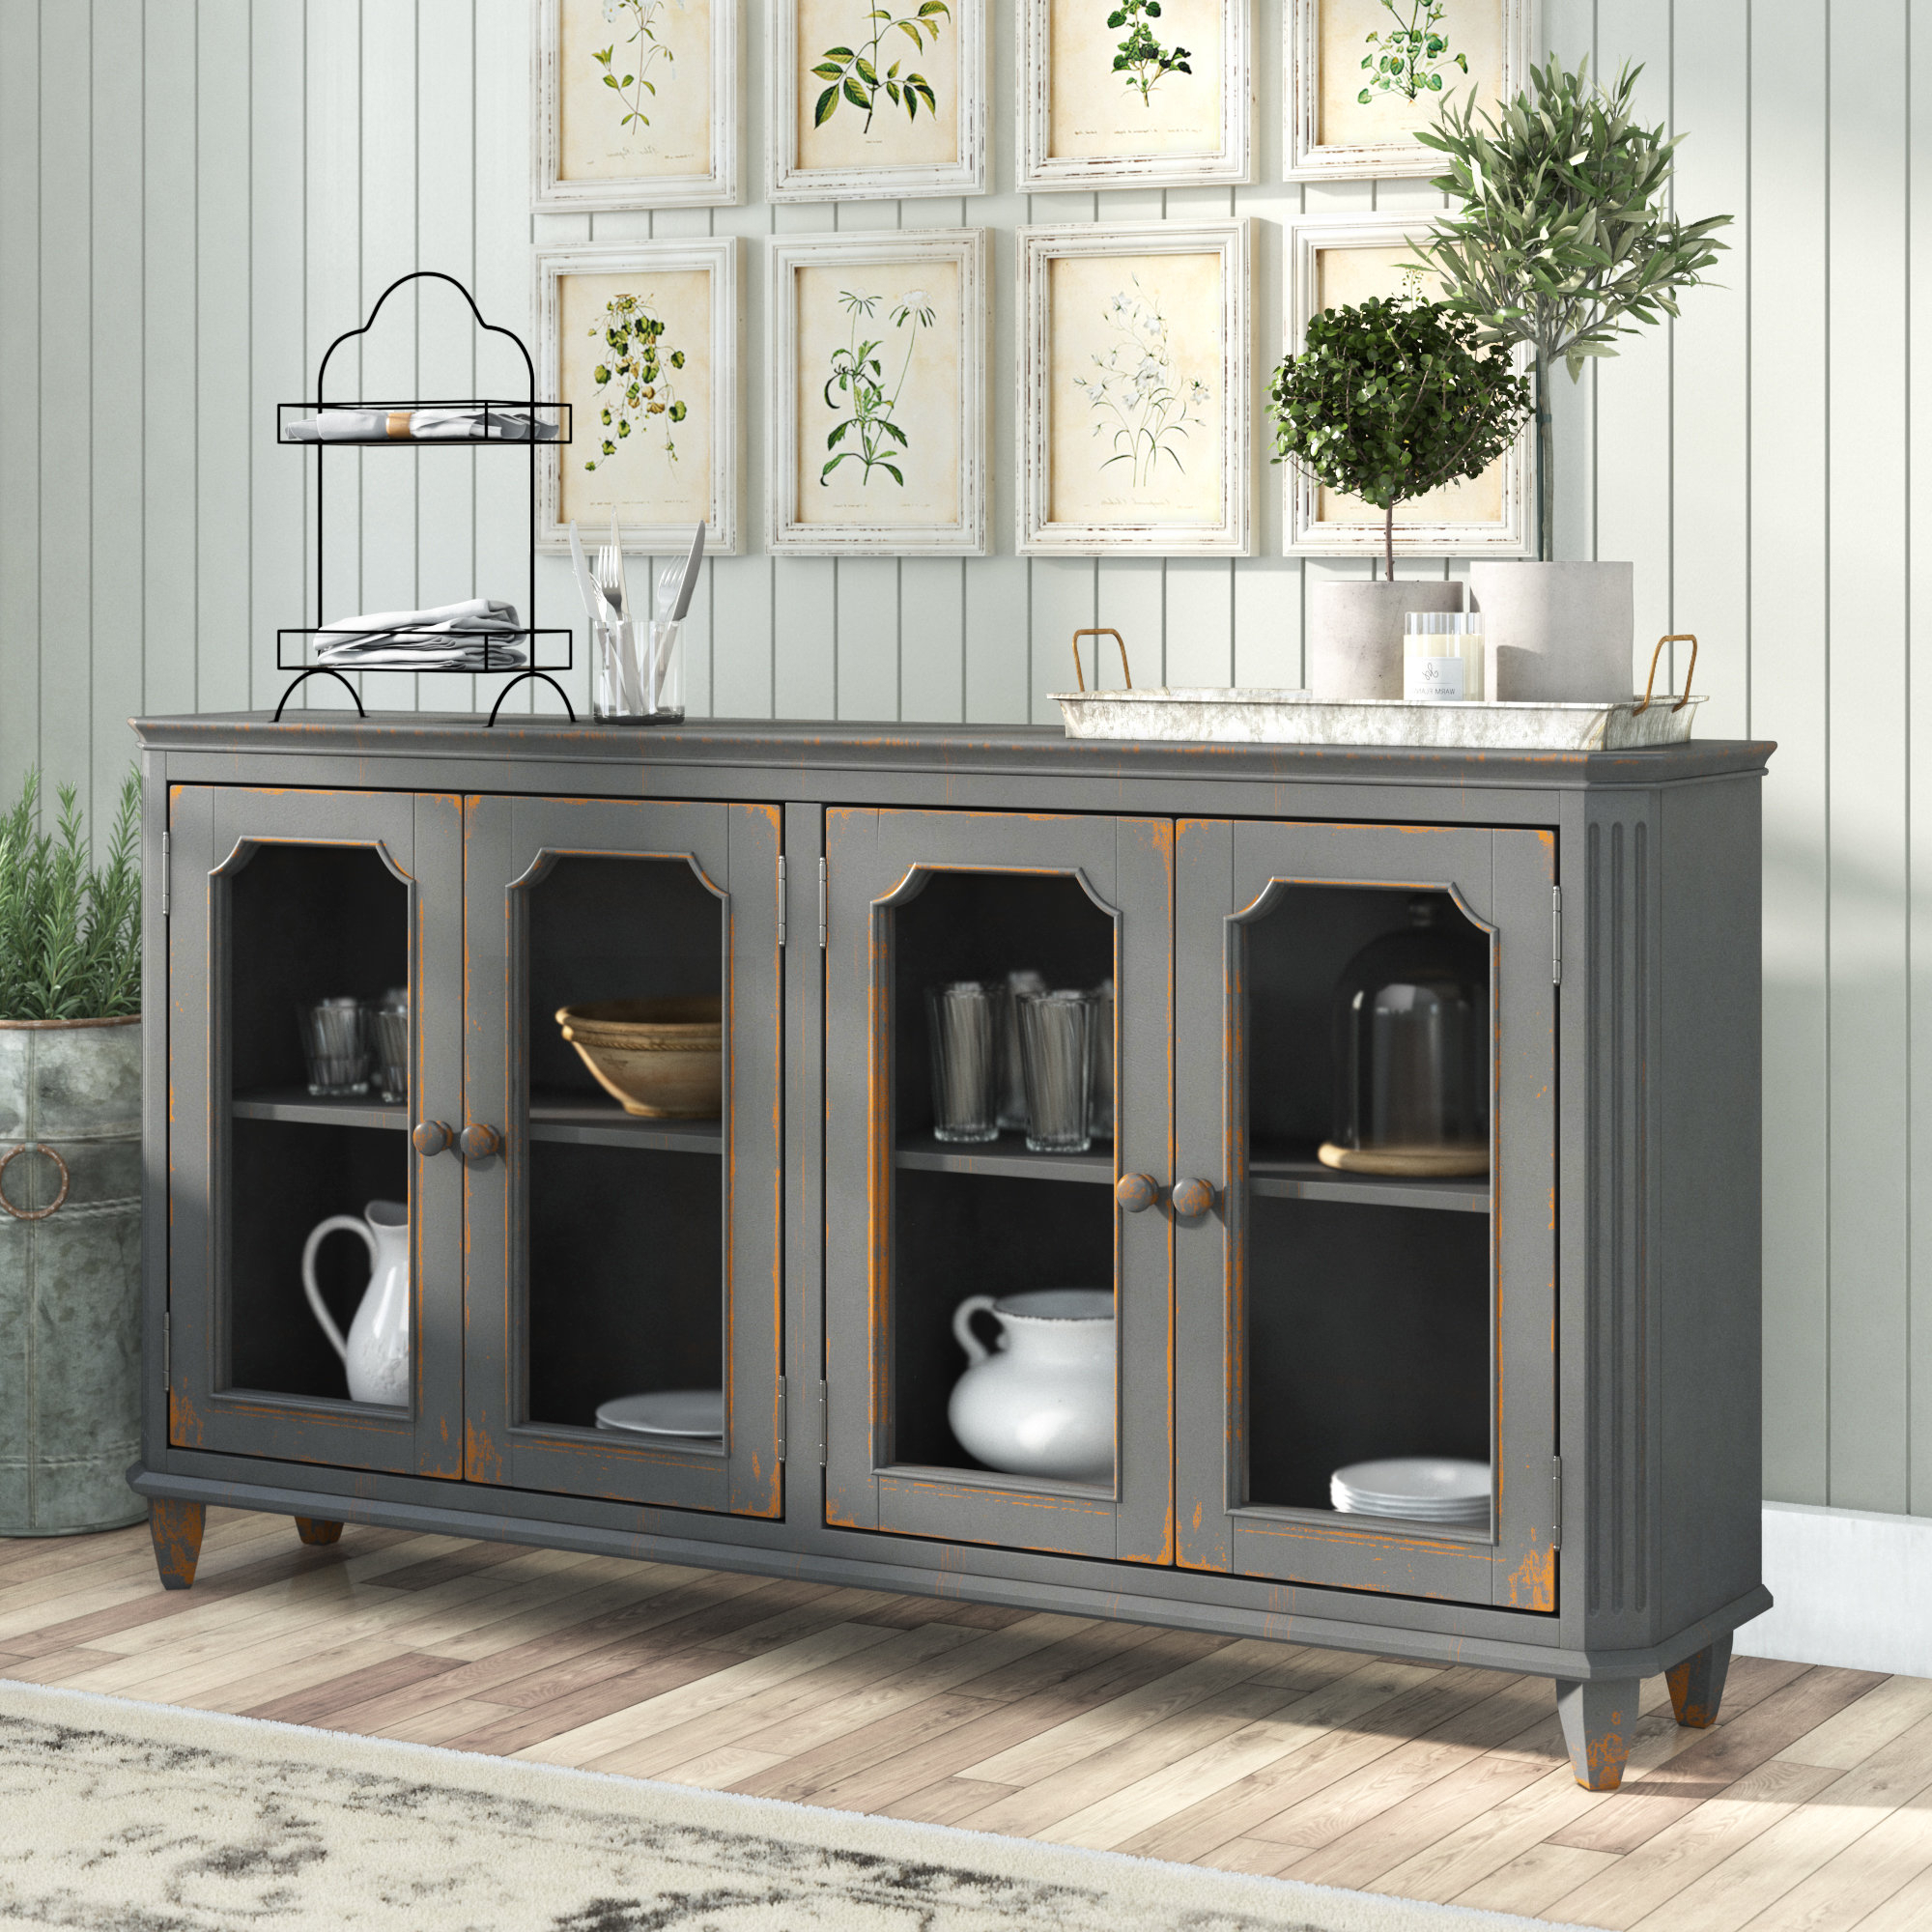 Raunds Accent Cabinet Within Most Recently Released Raunds Sideboards (View 16 of 20)